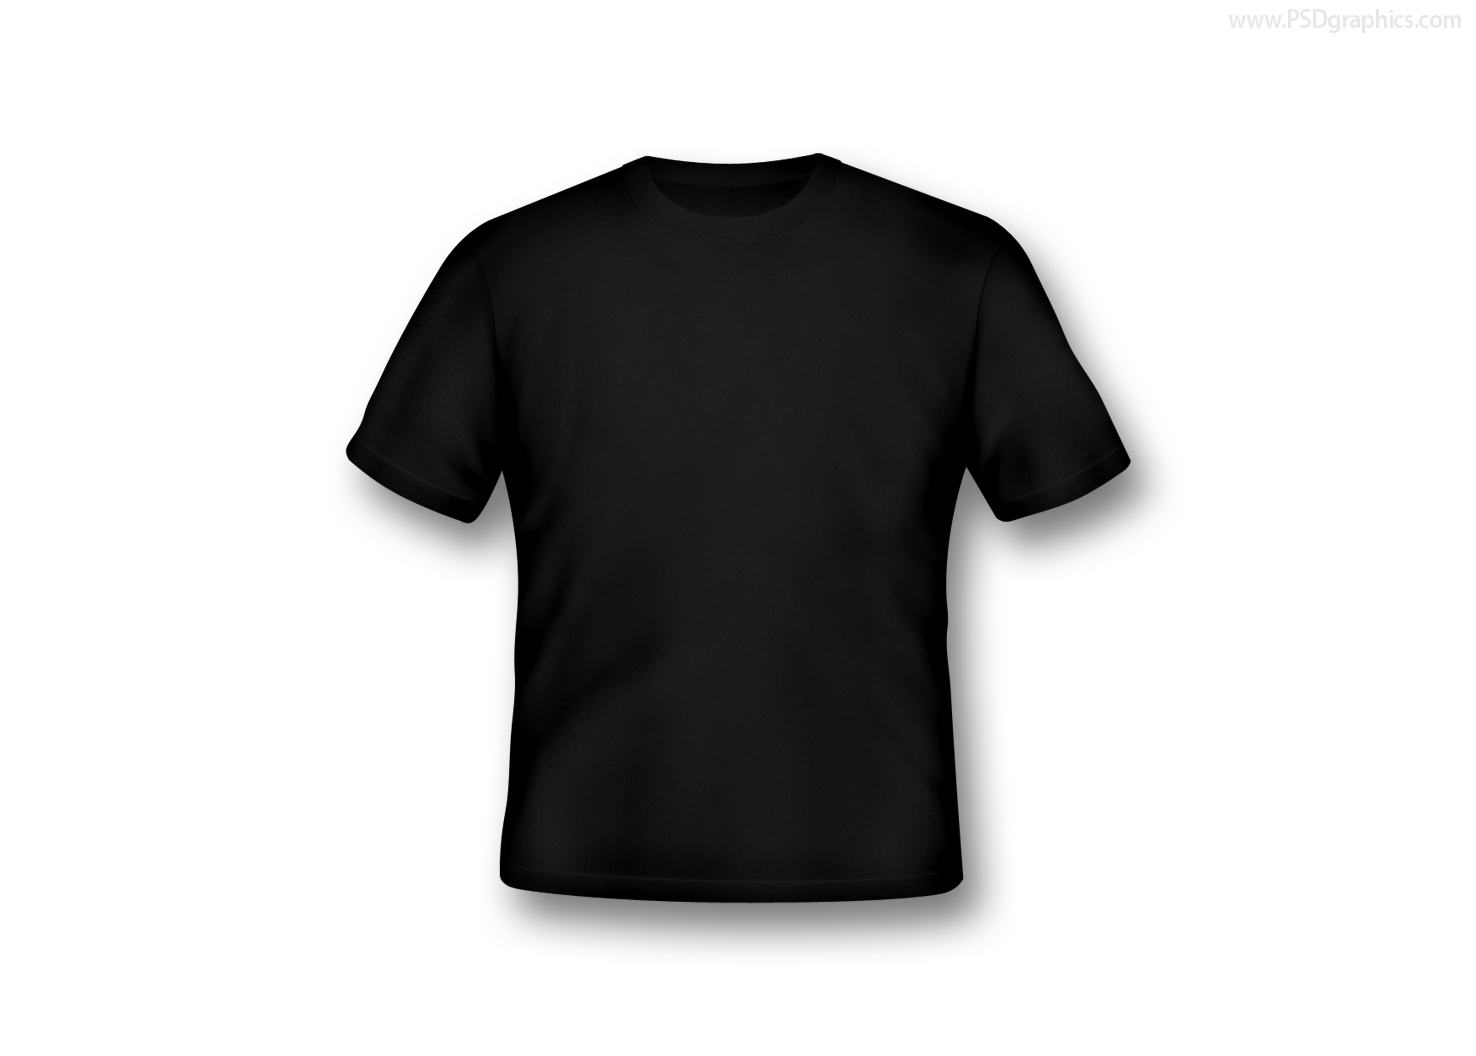 blank t shirts in various colors psdgraphics. Black Bedroom Furniture Sets. Home Design Ideas